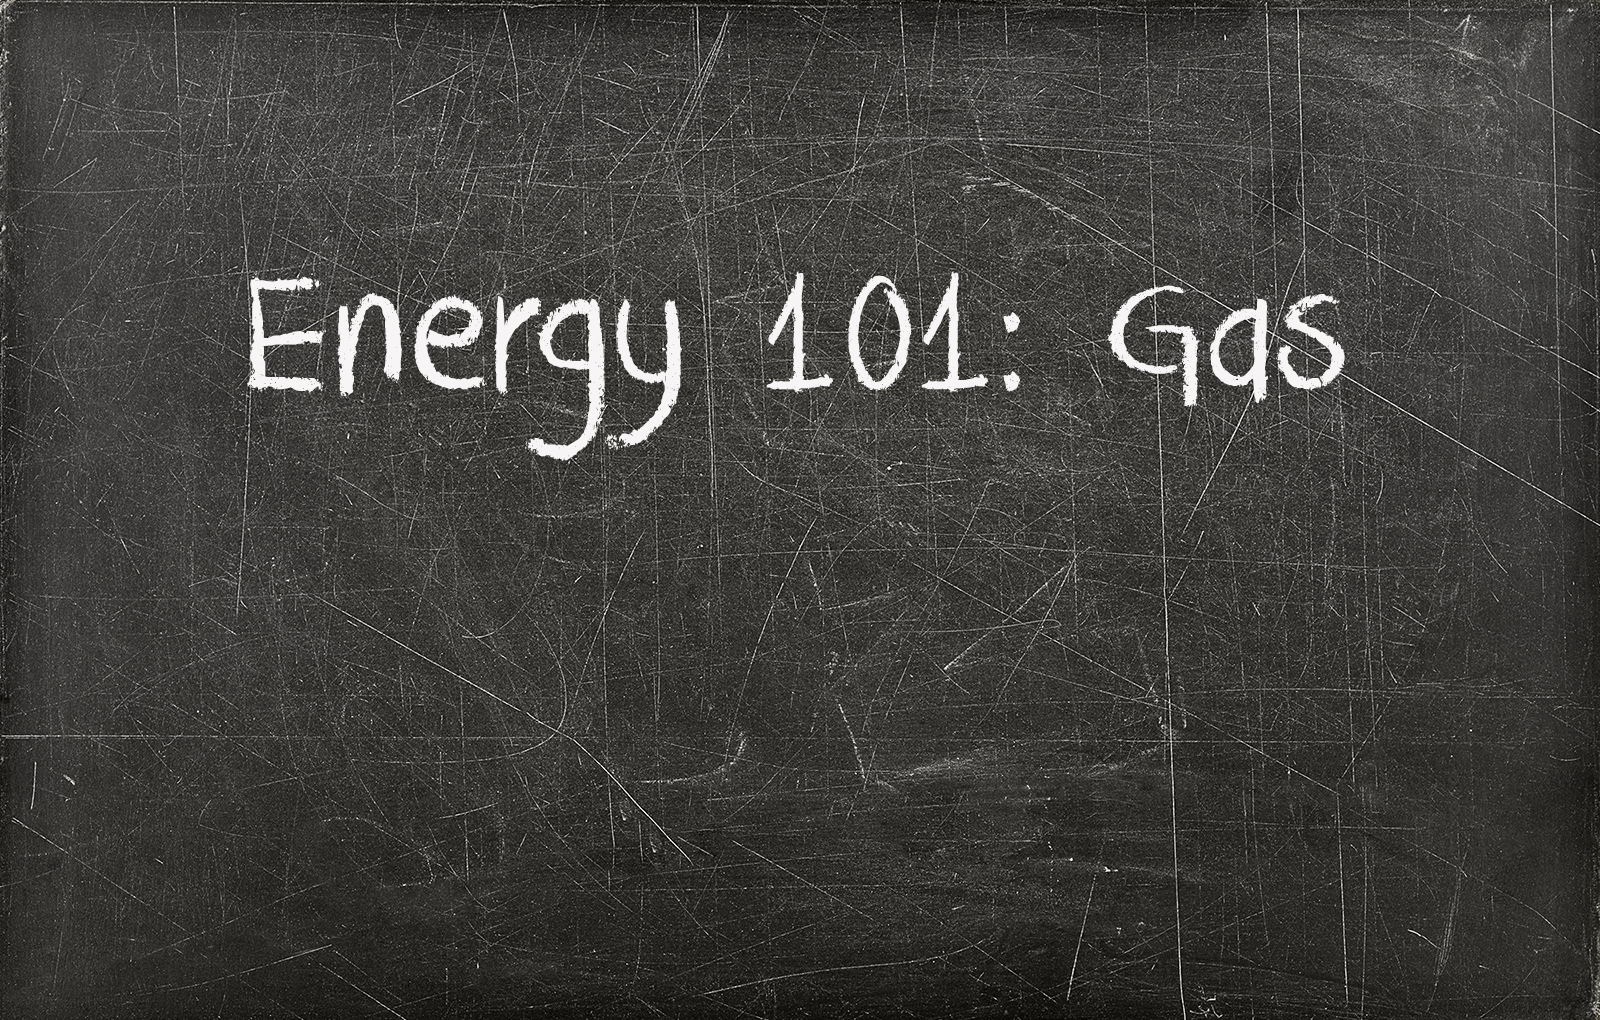 Chalkboard with writing saying Energy 101 Gas on it